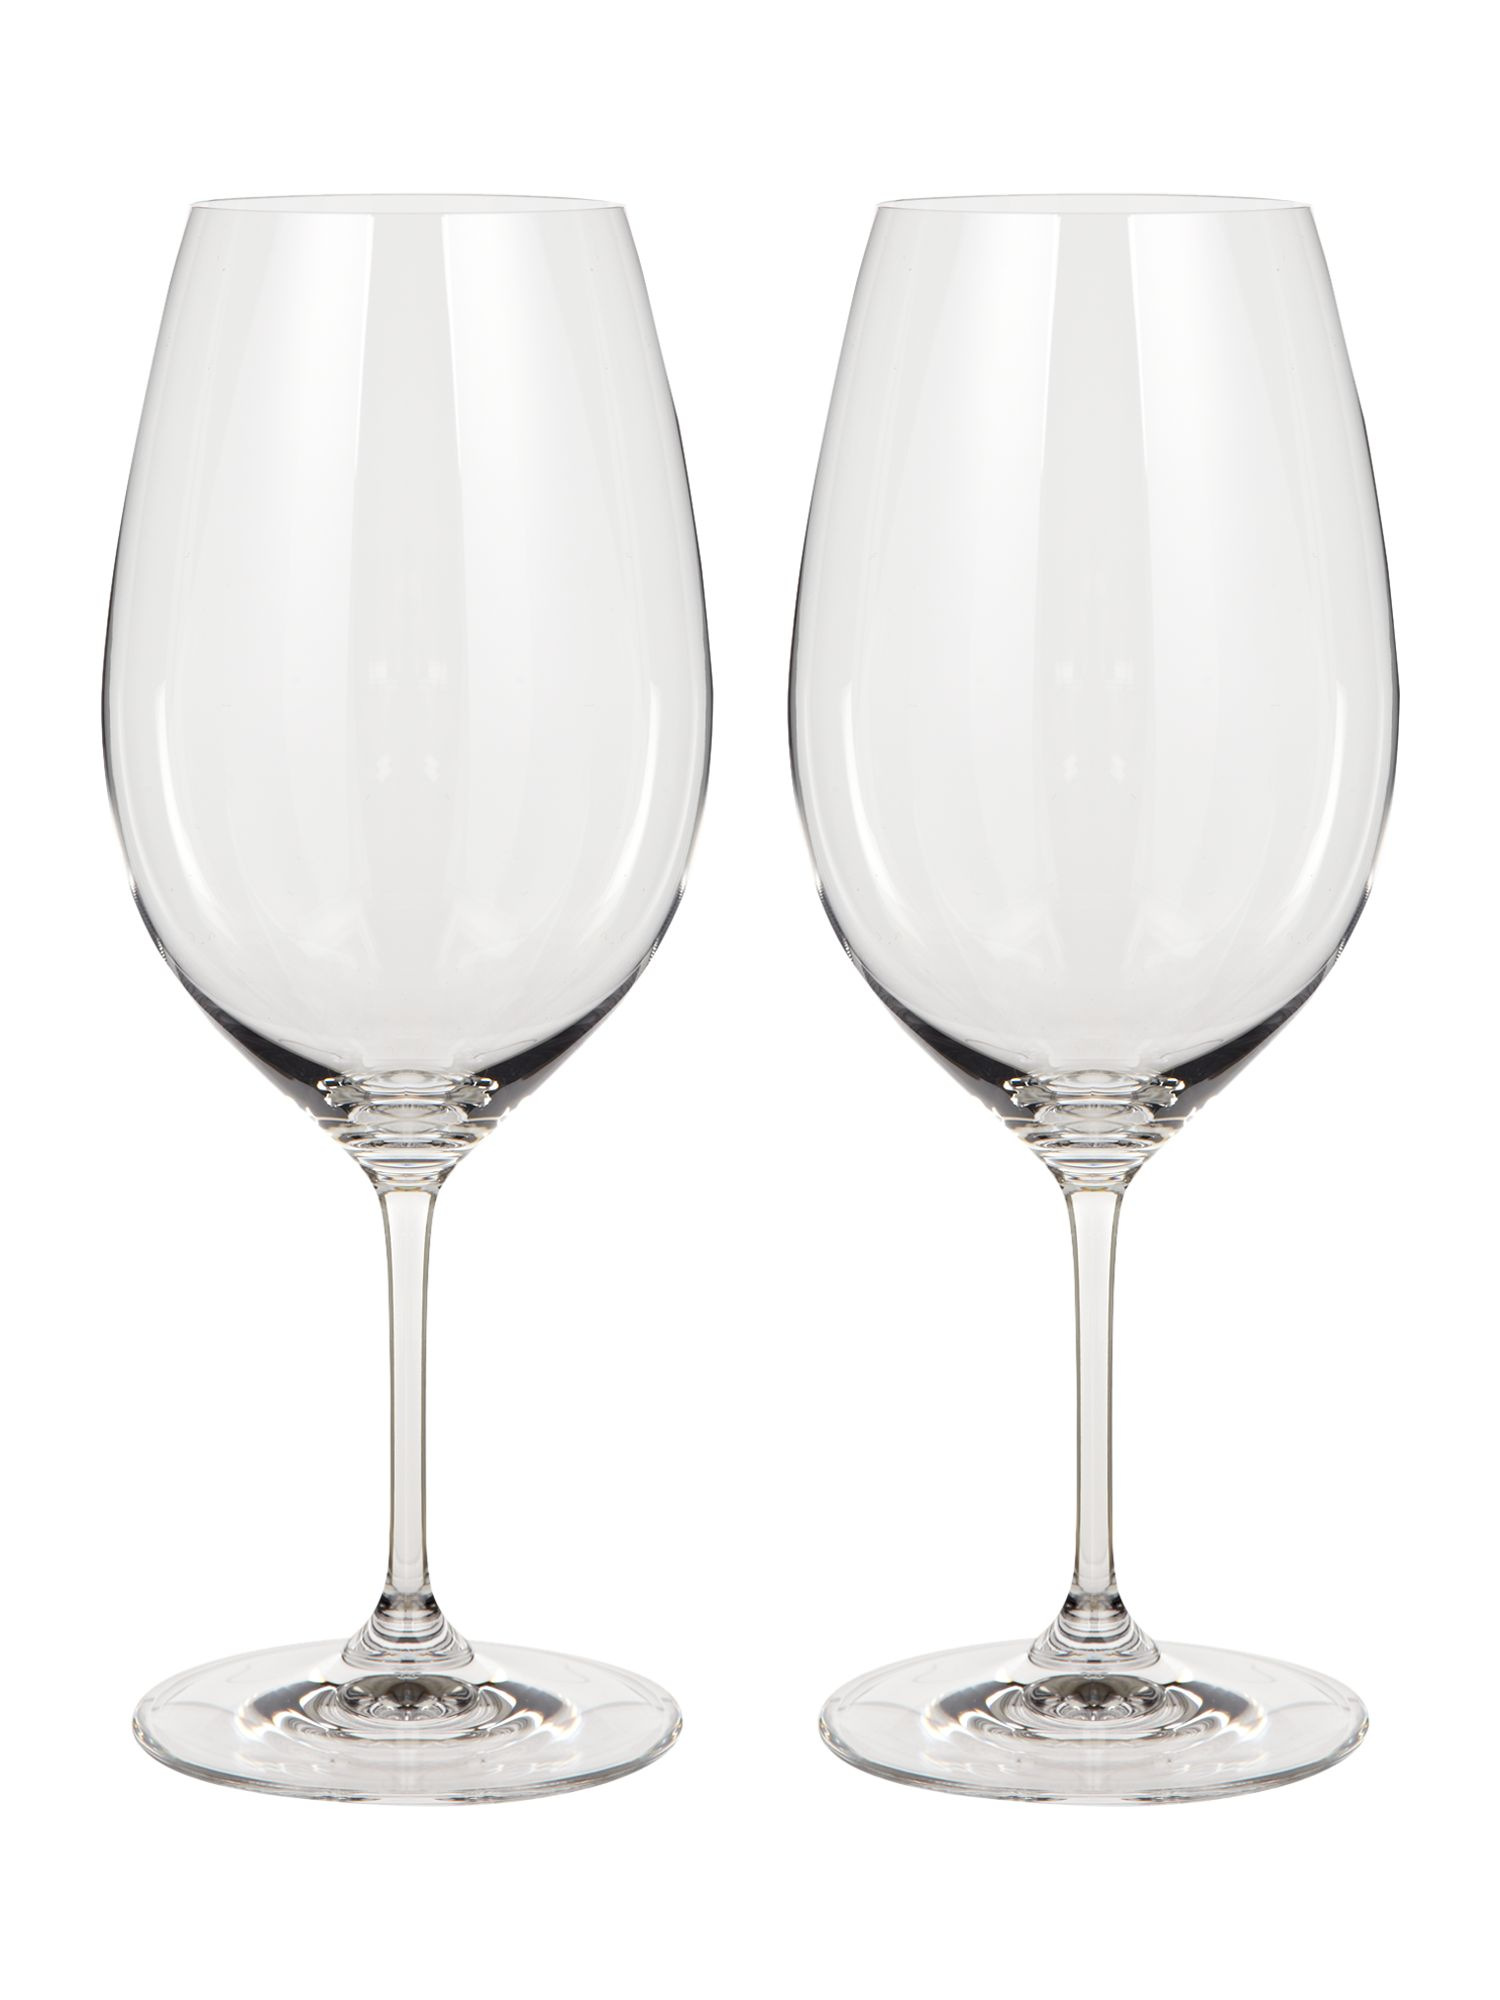 Riedel wine glass shop for cheap glassware and save online - Riedel swirl white wine glasses ...